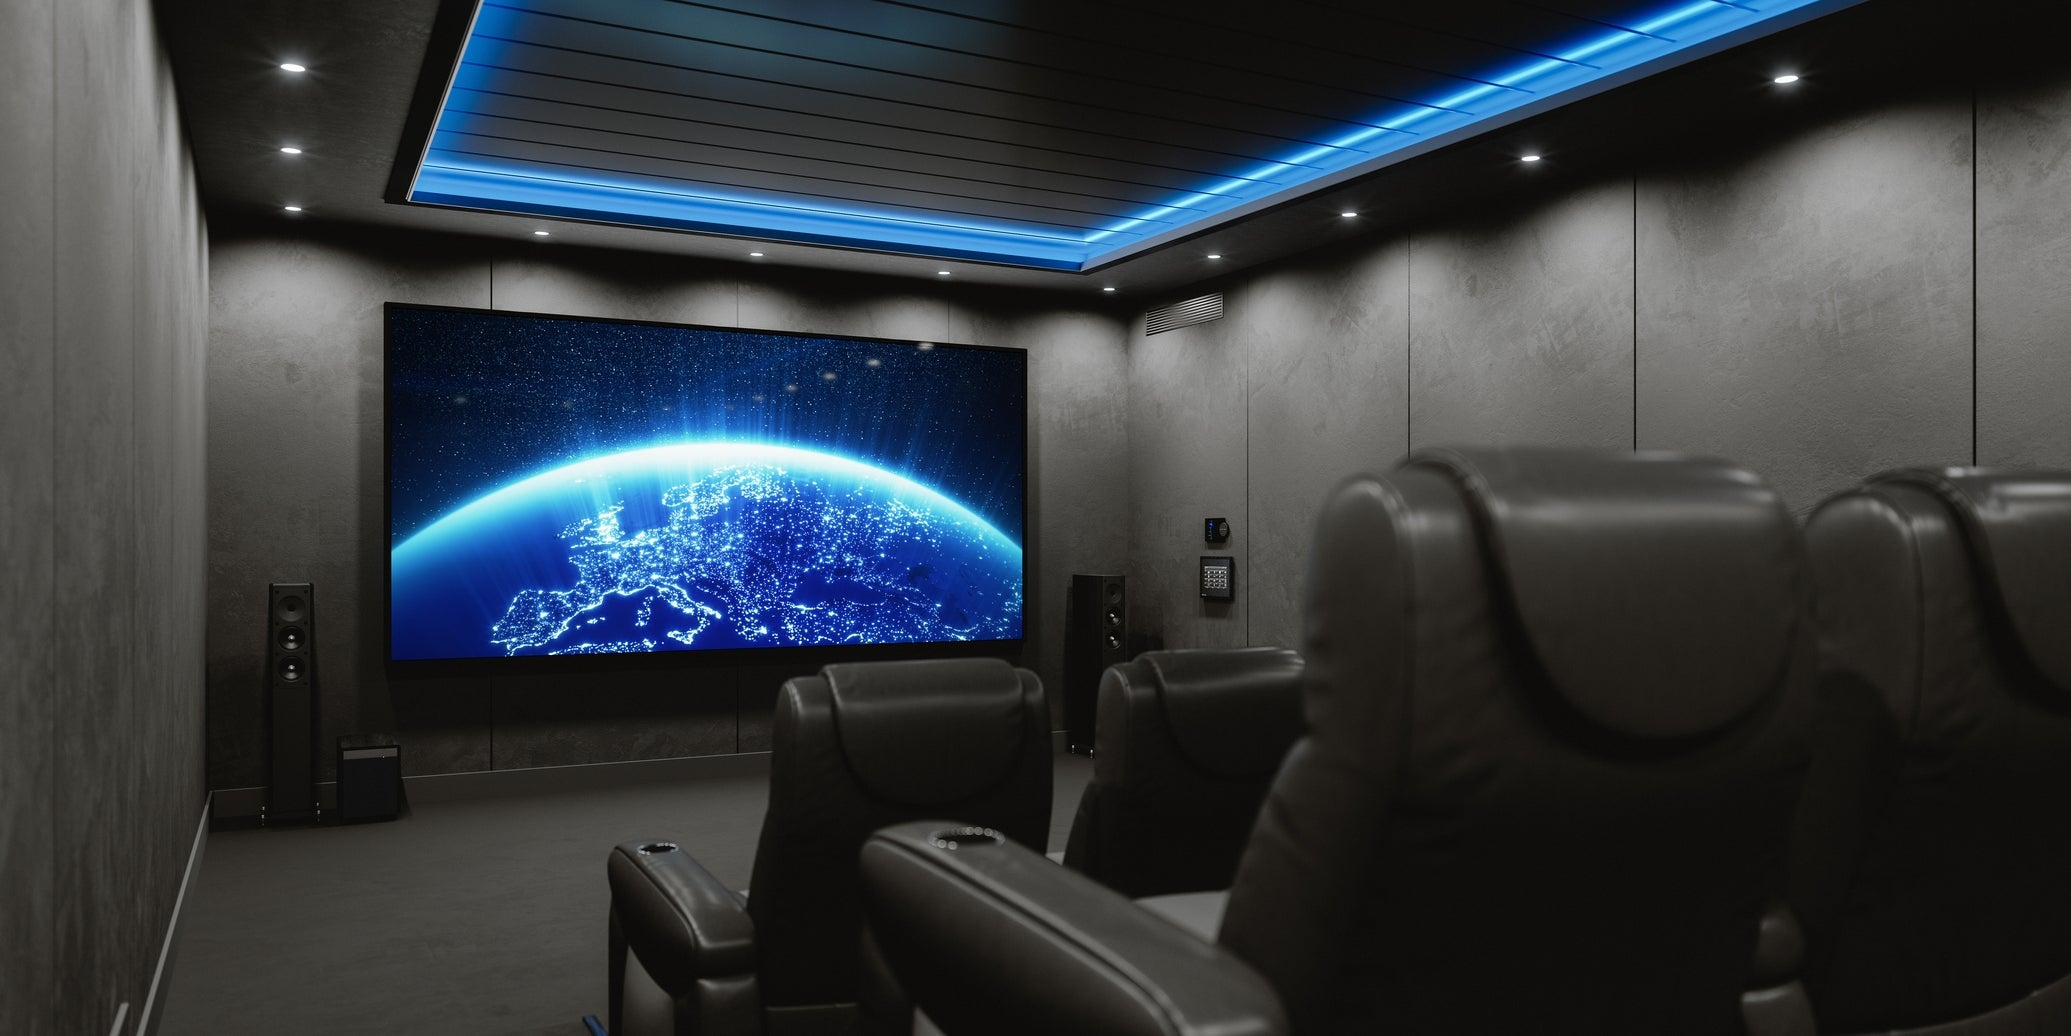 Home theater AV setup